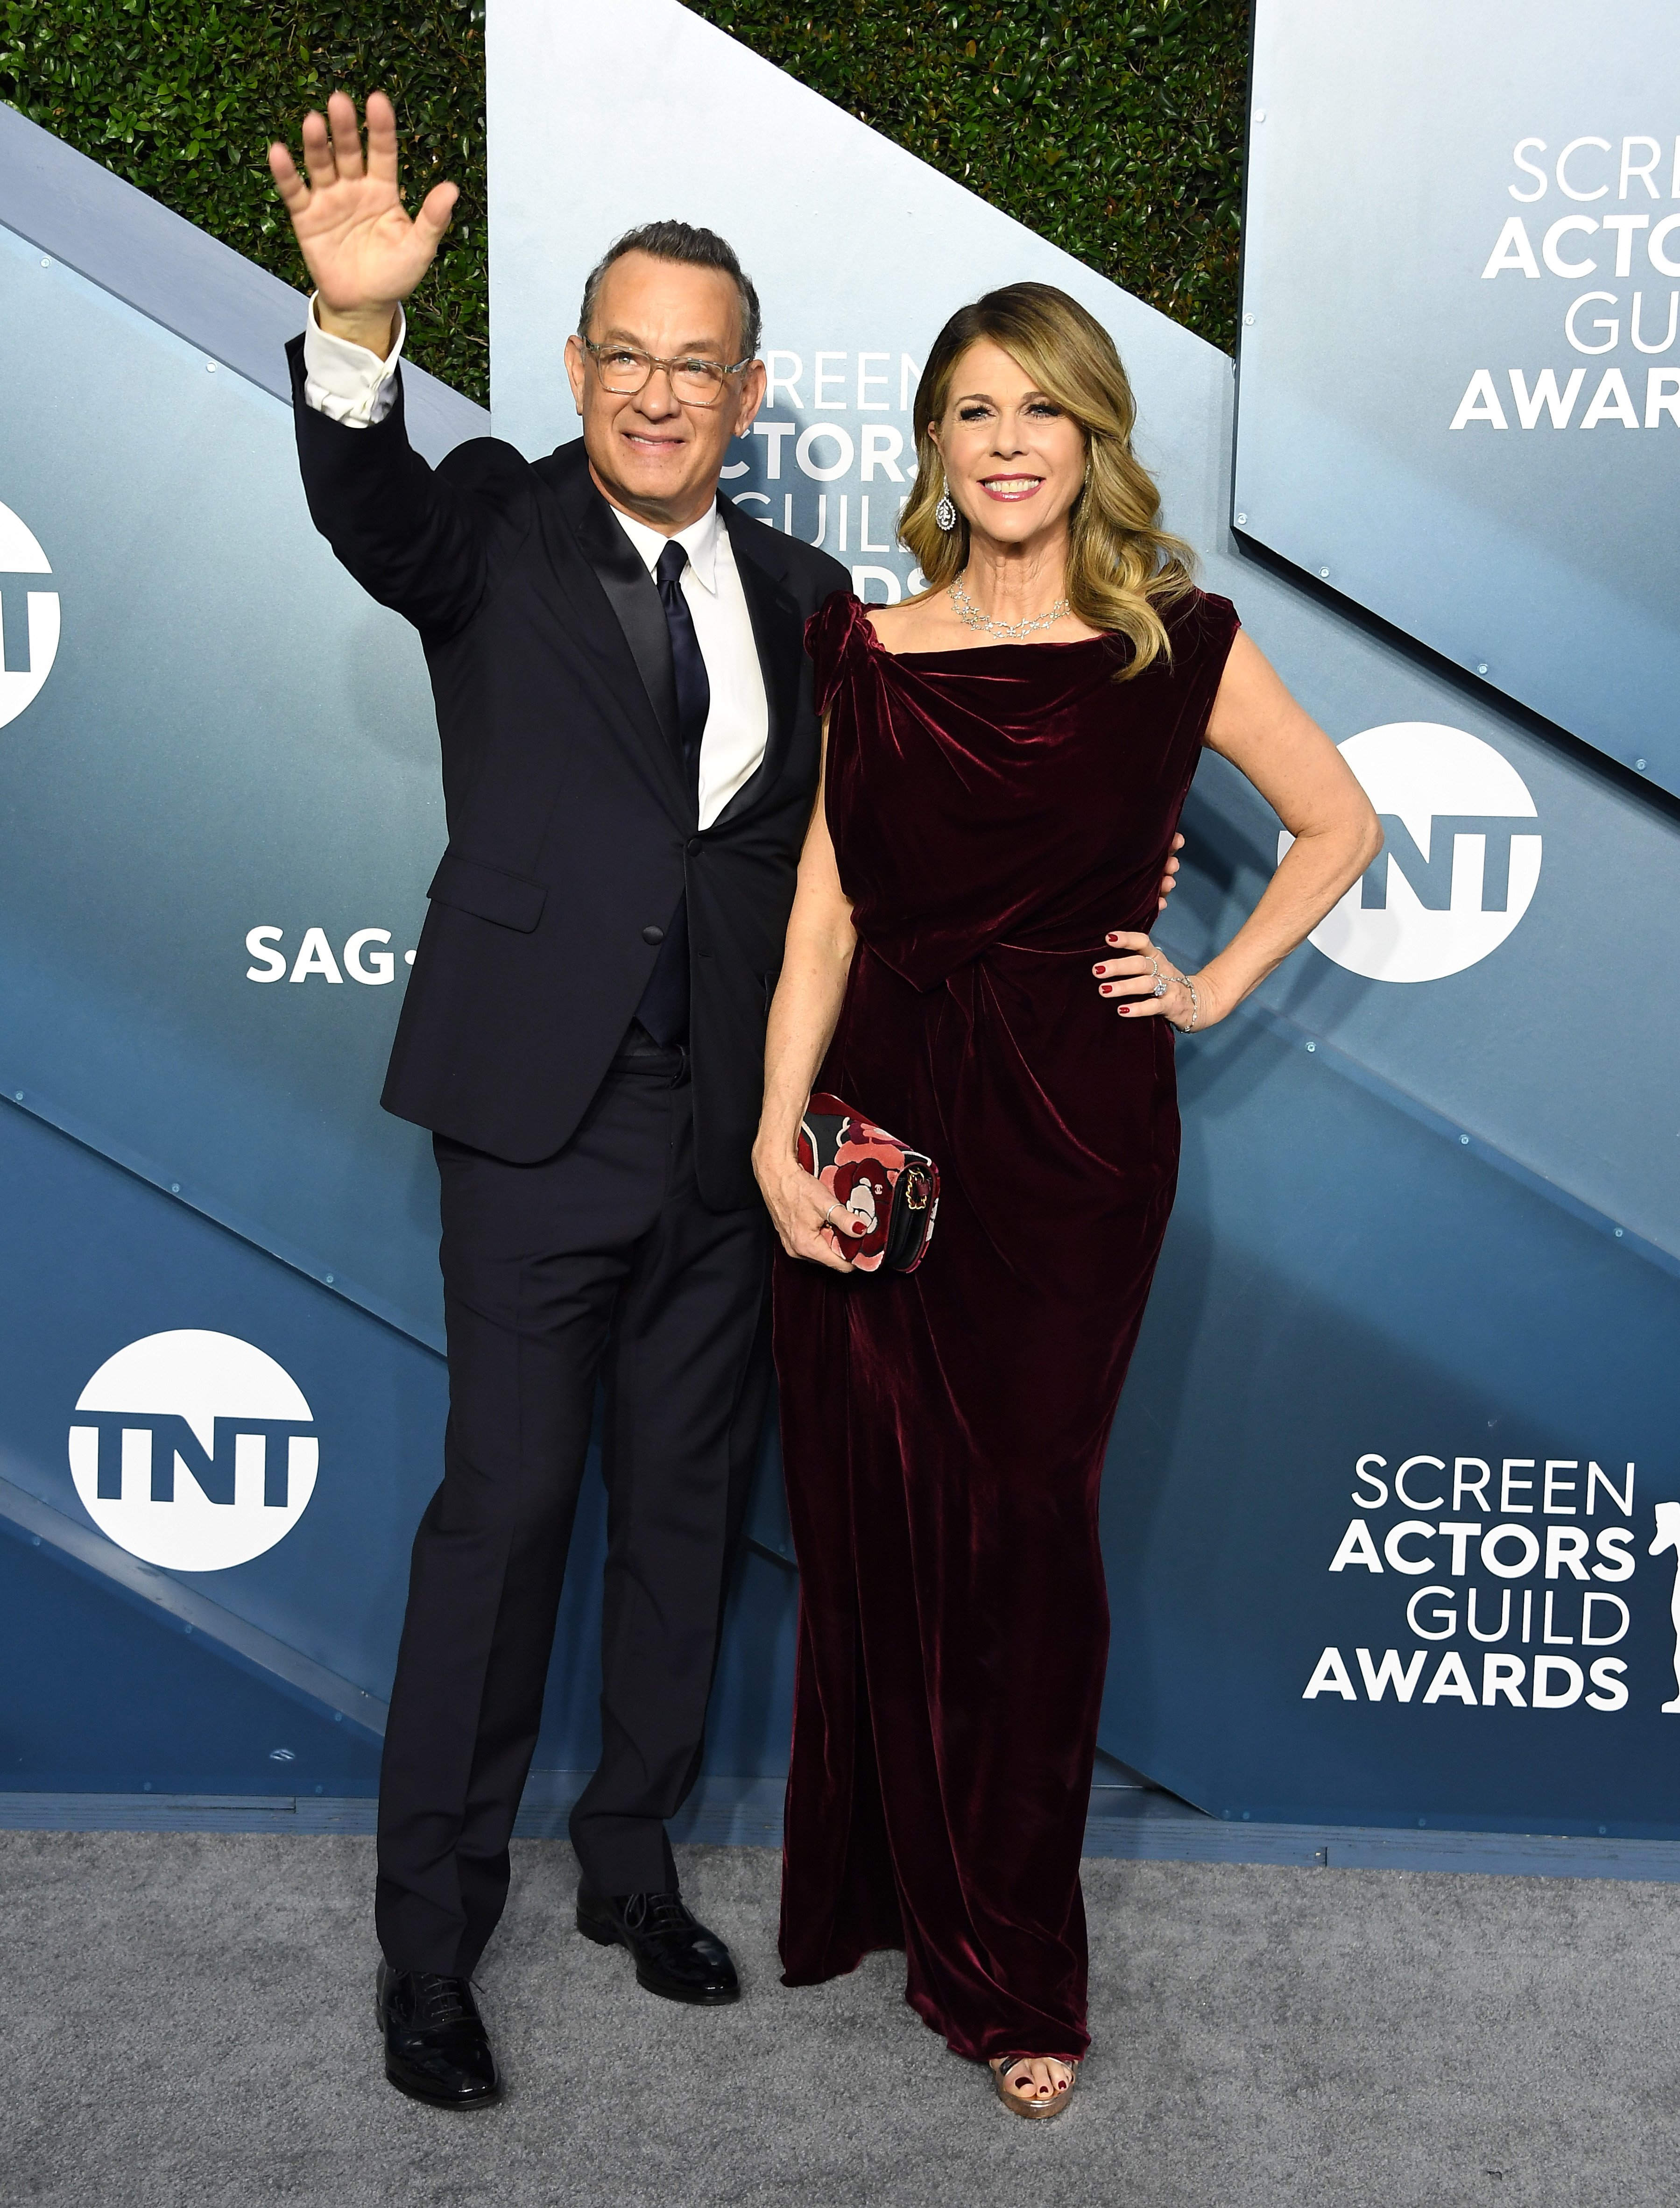 Tom Hanks and Rita Wilson arrives at the 26th Annual Screen ActorsGuild Awards on January 19, 2020 | Photo: Getty Images.